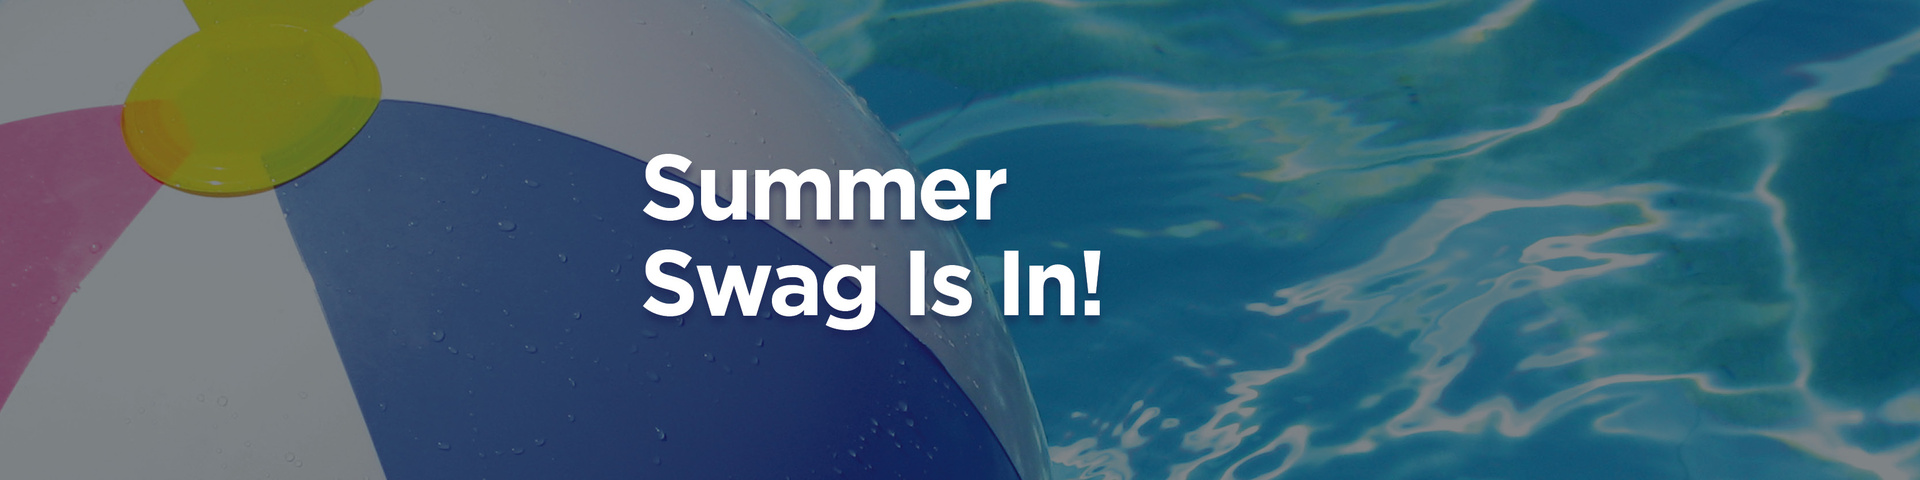 Summer Swag Is In!